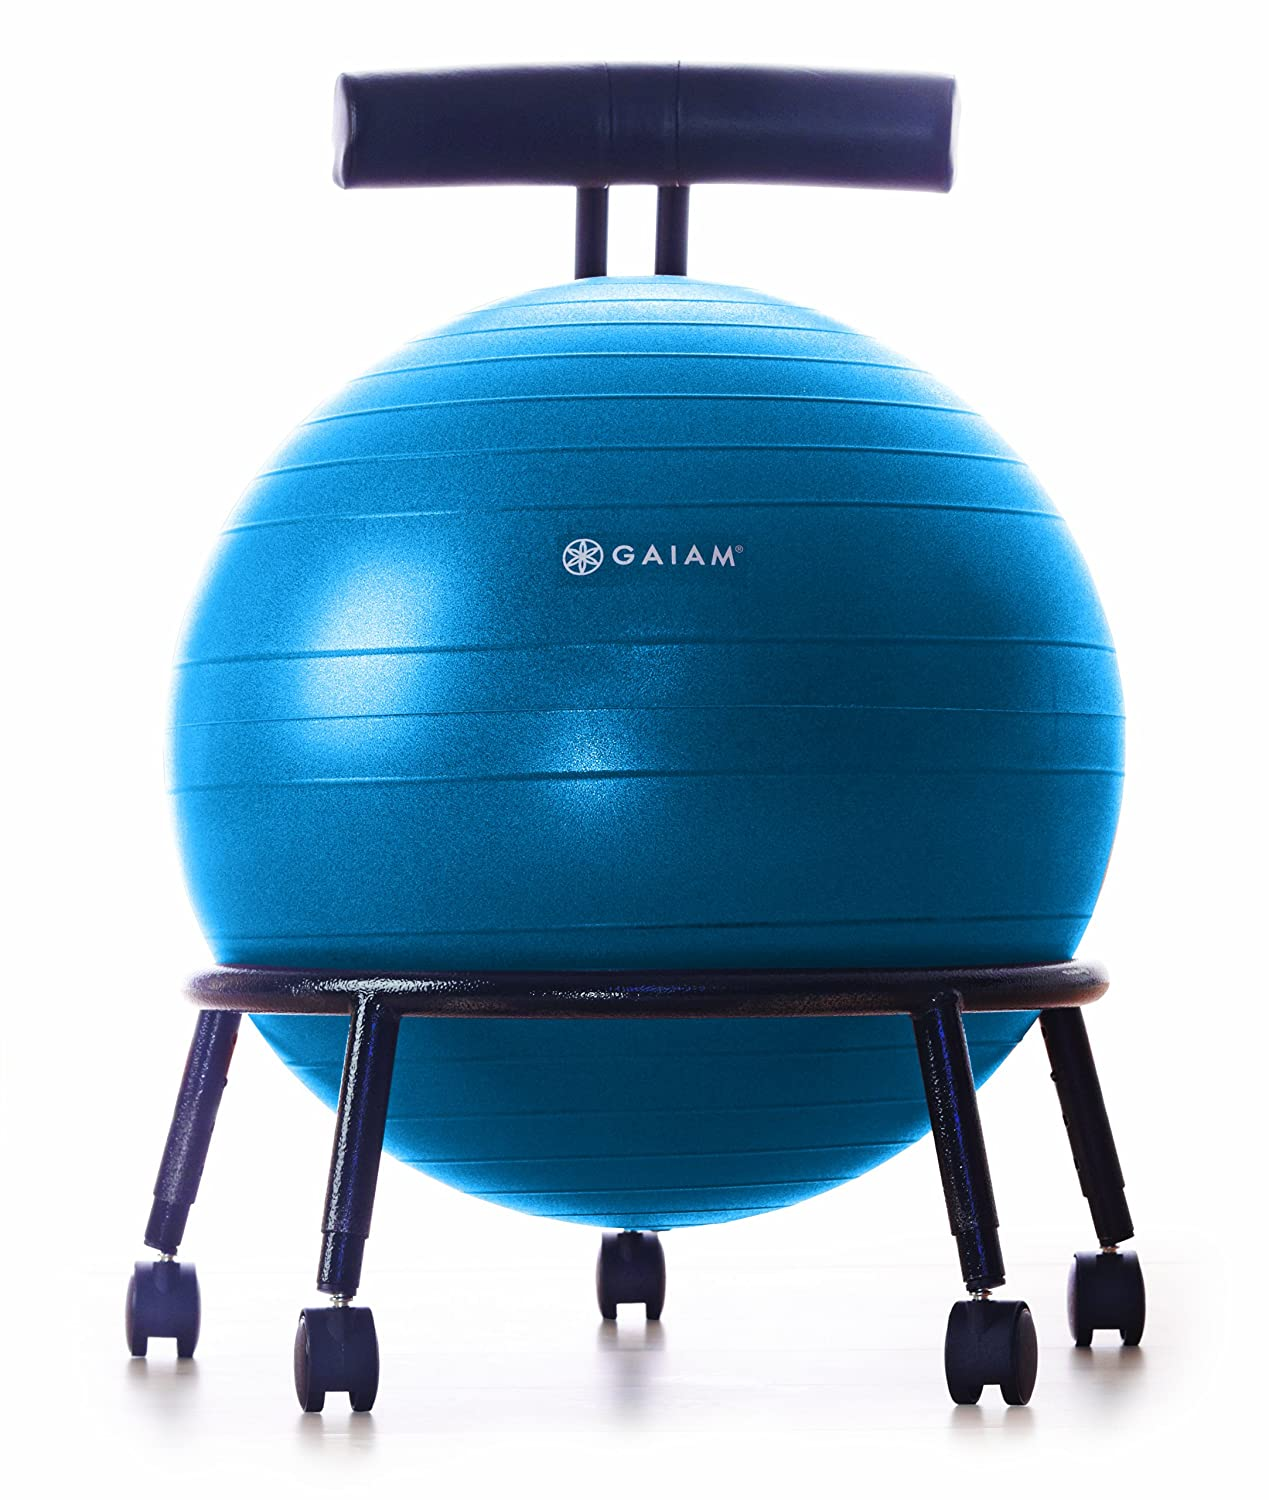 Gaiam Custom Fit Balance Ball Chair (Adjustable) $59.99 Limited Time Offer